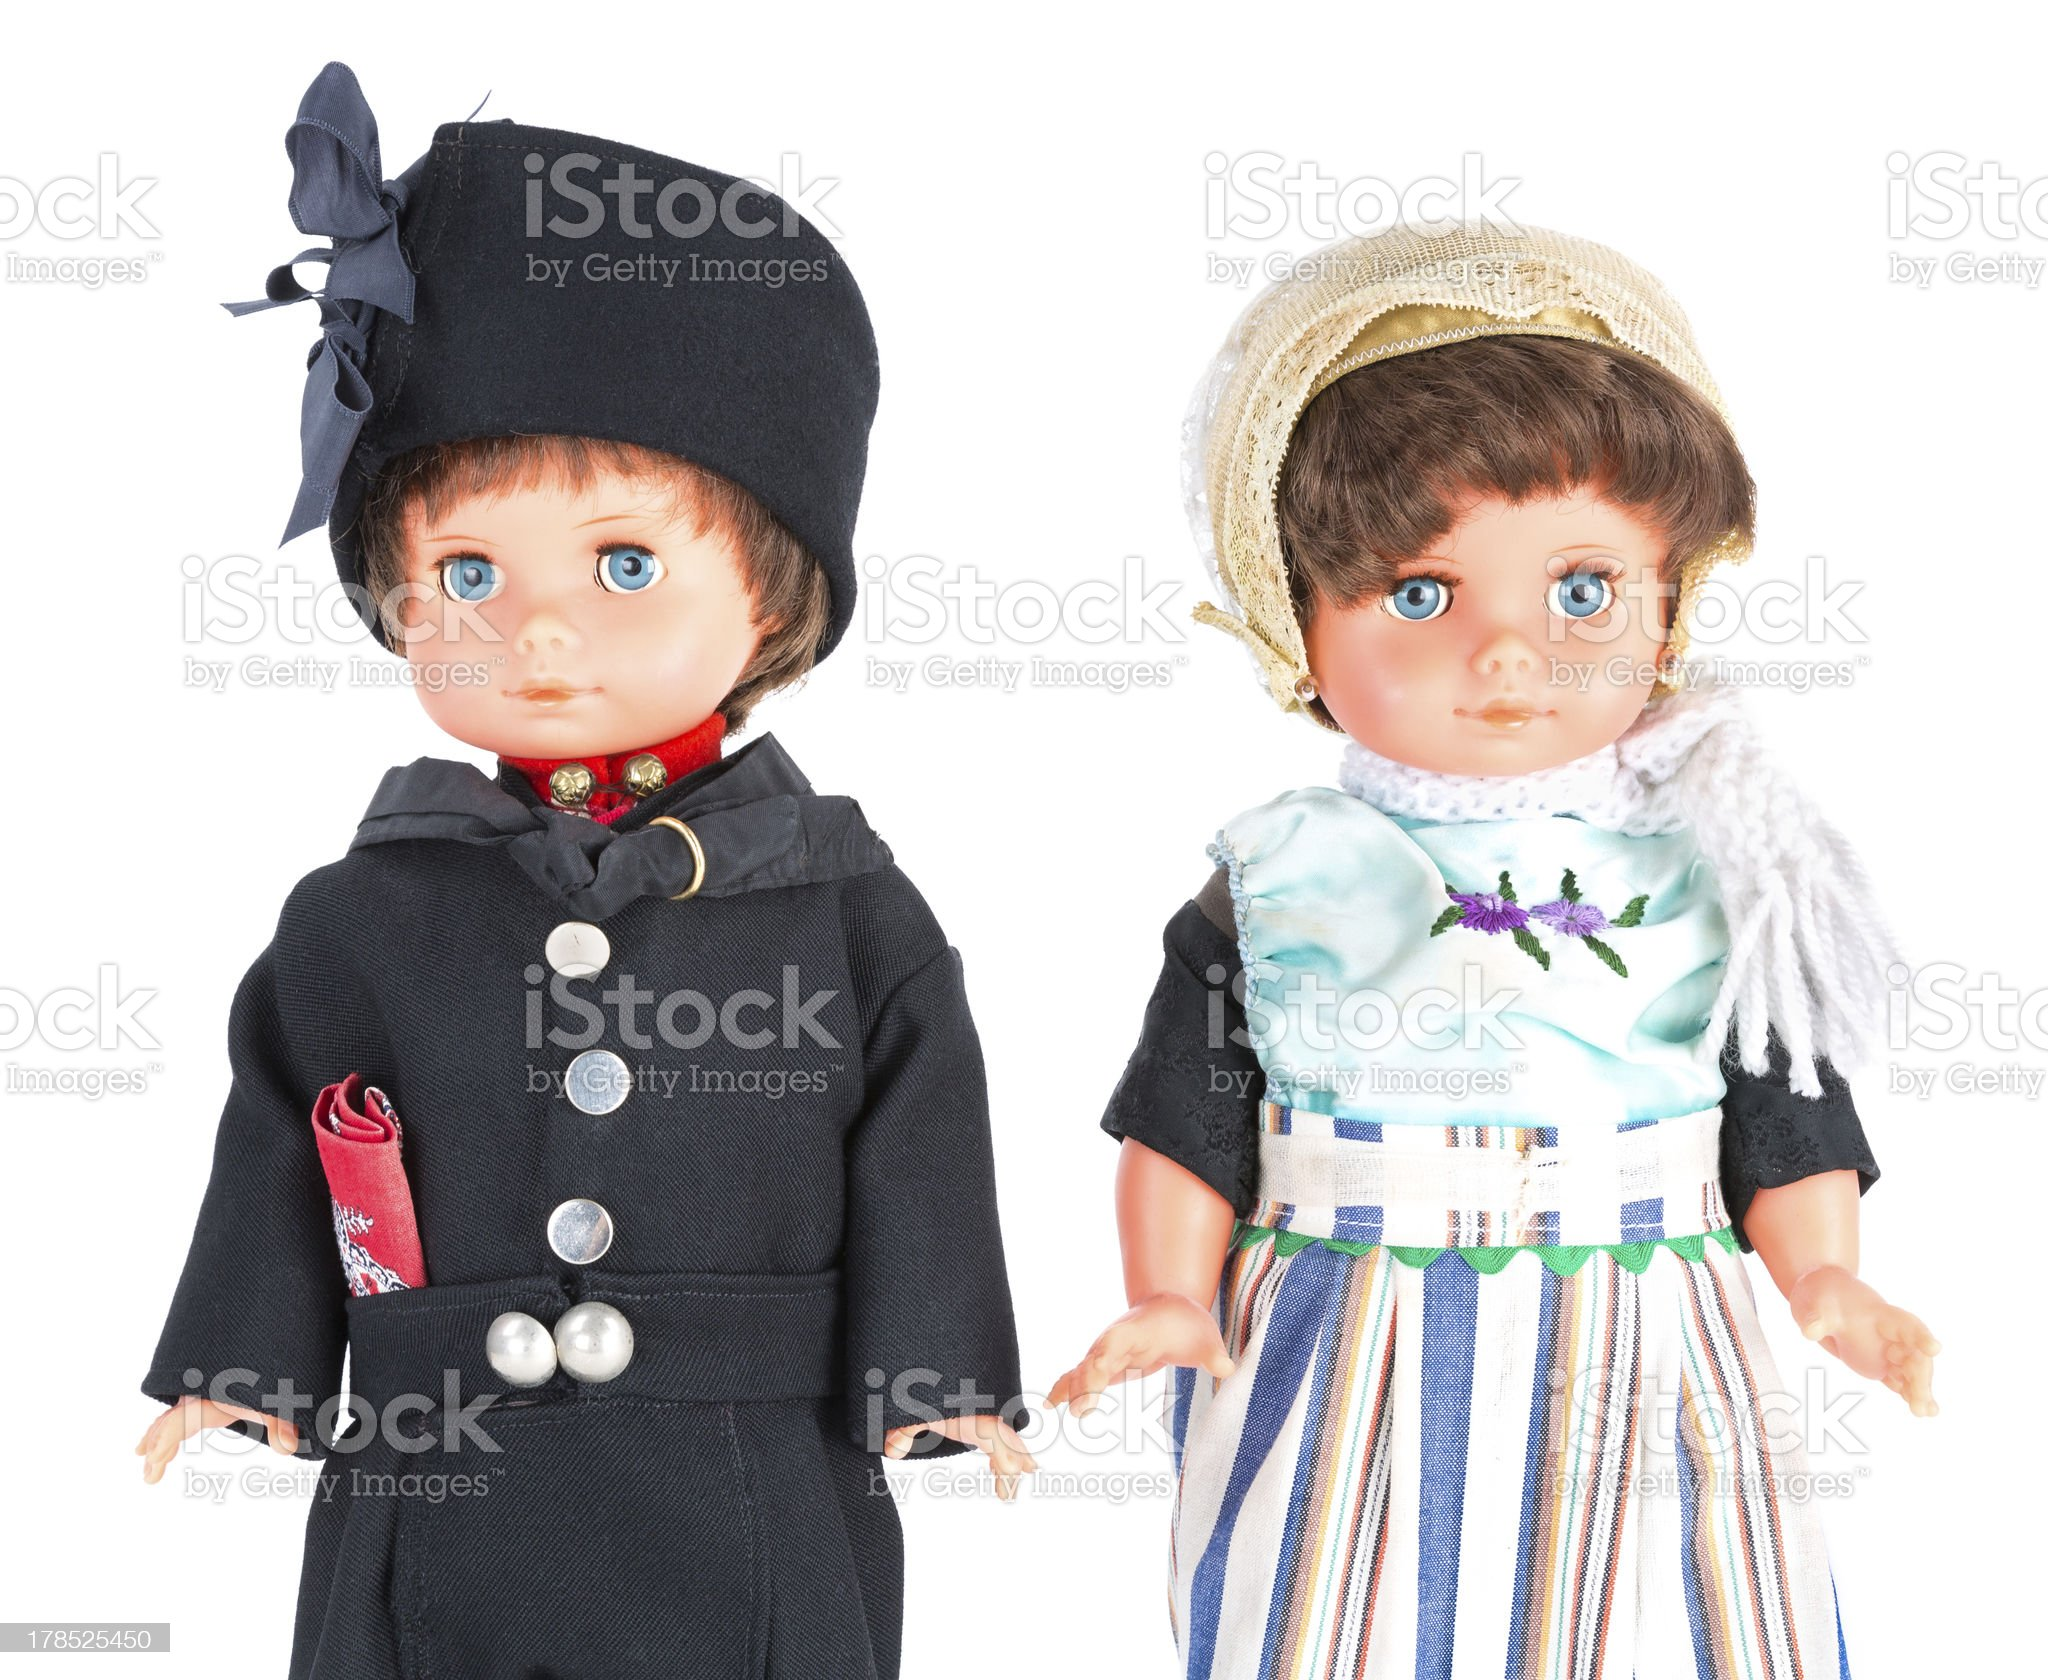 Two puppets with traditional Dutch clothes of Urk royalty-free stock photo